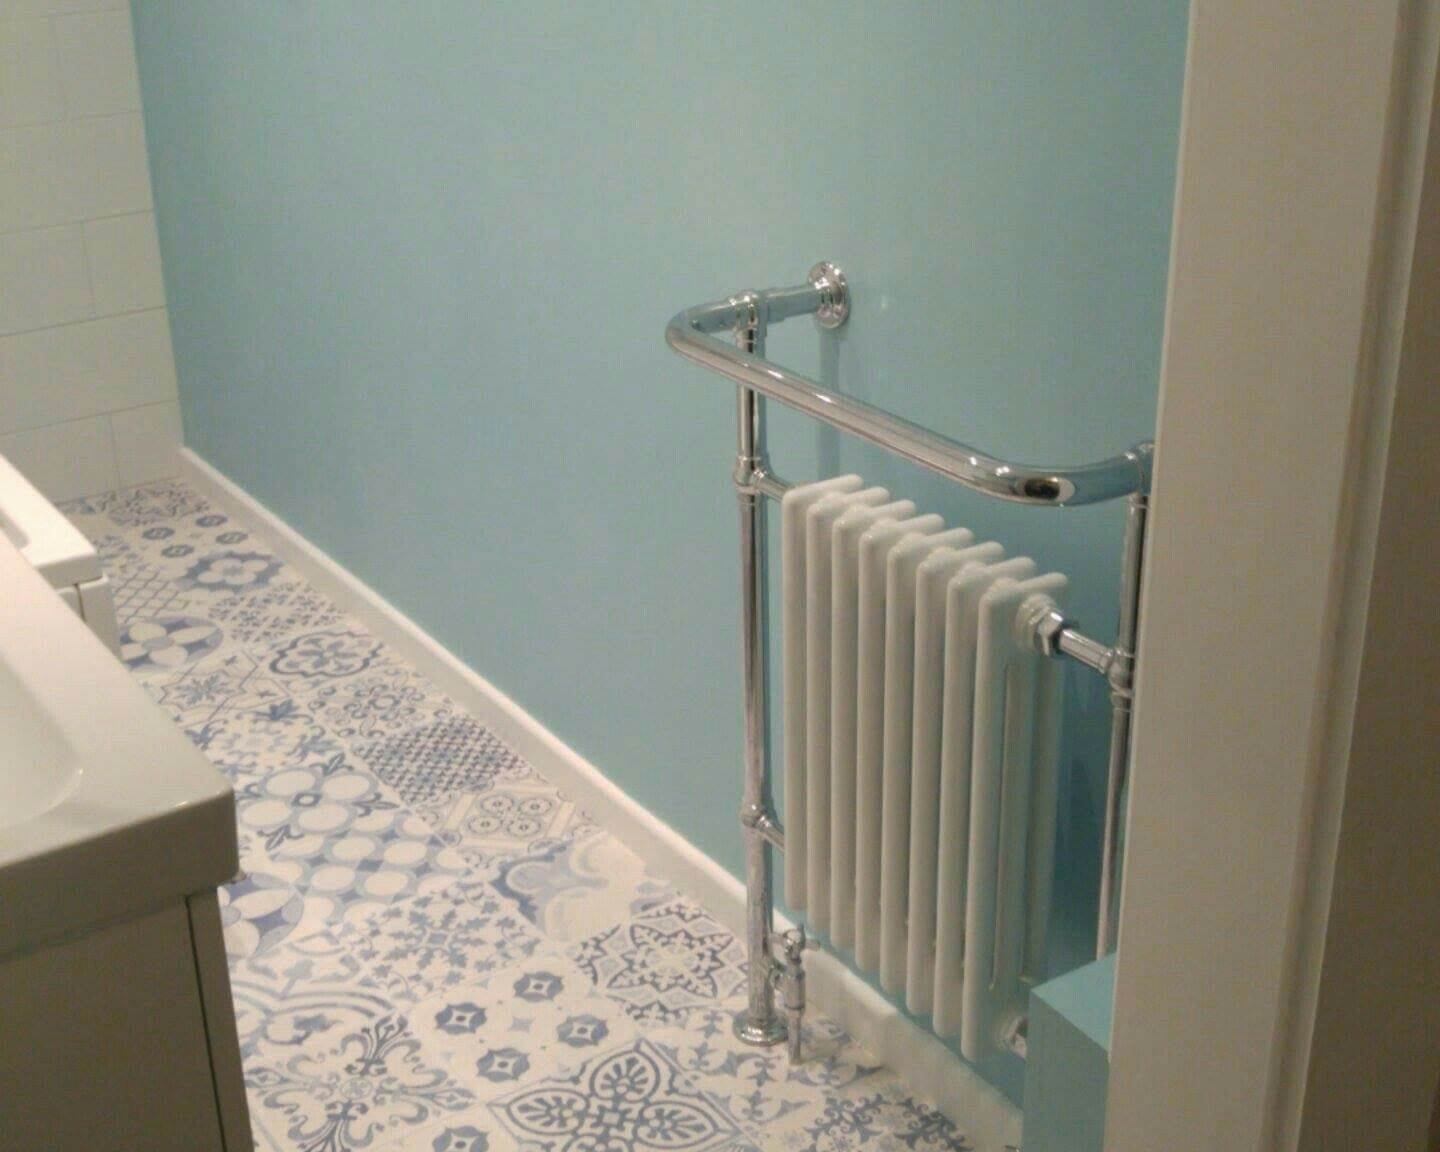 The finished product! Skyros Delft Blue Tiles, Bathstore Pool Bath ...